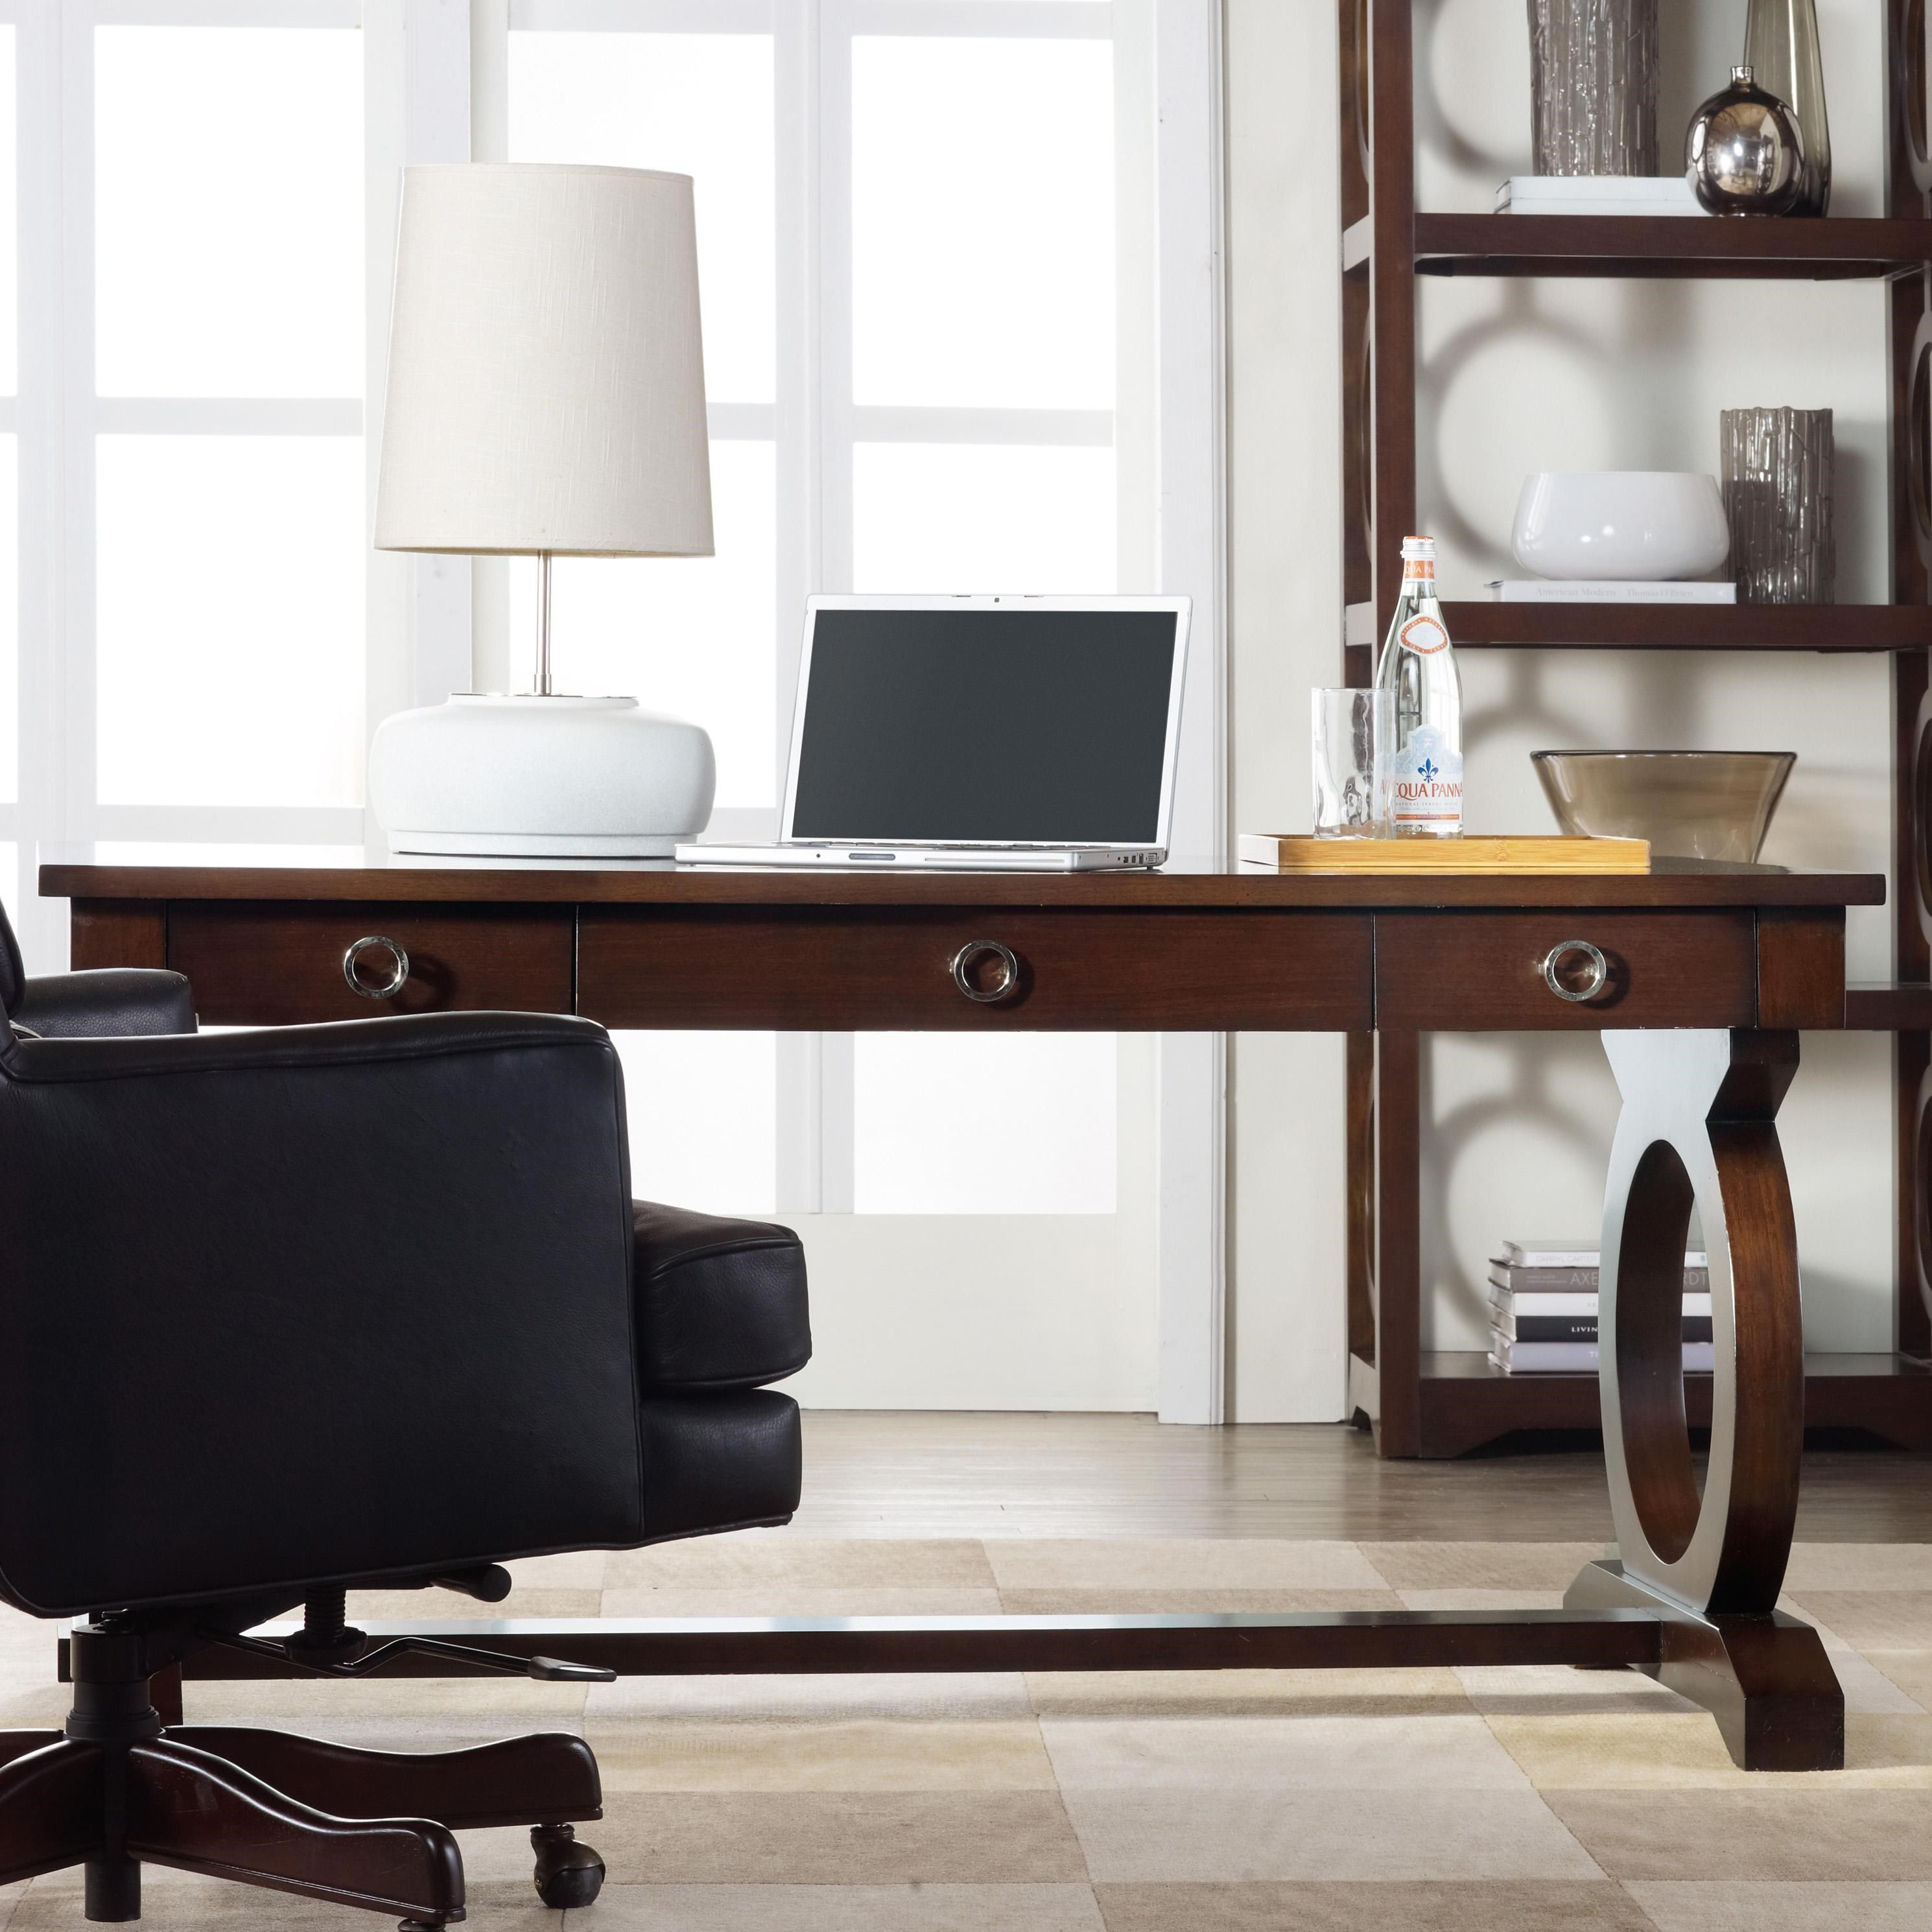 Gentil Hooker Furniture Kinsey Contemporary Writing Desk With Drop Front Keyboard  Drawer And Open Circle Fretwork